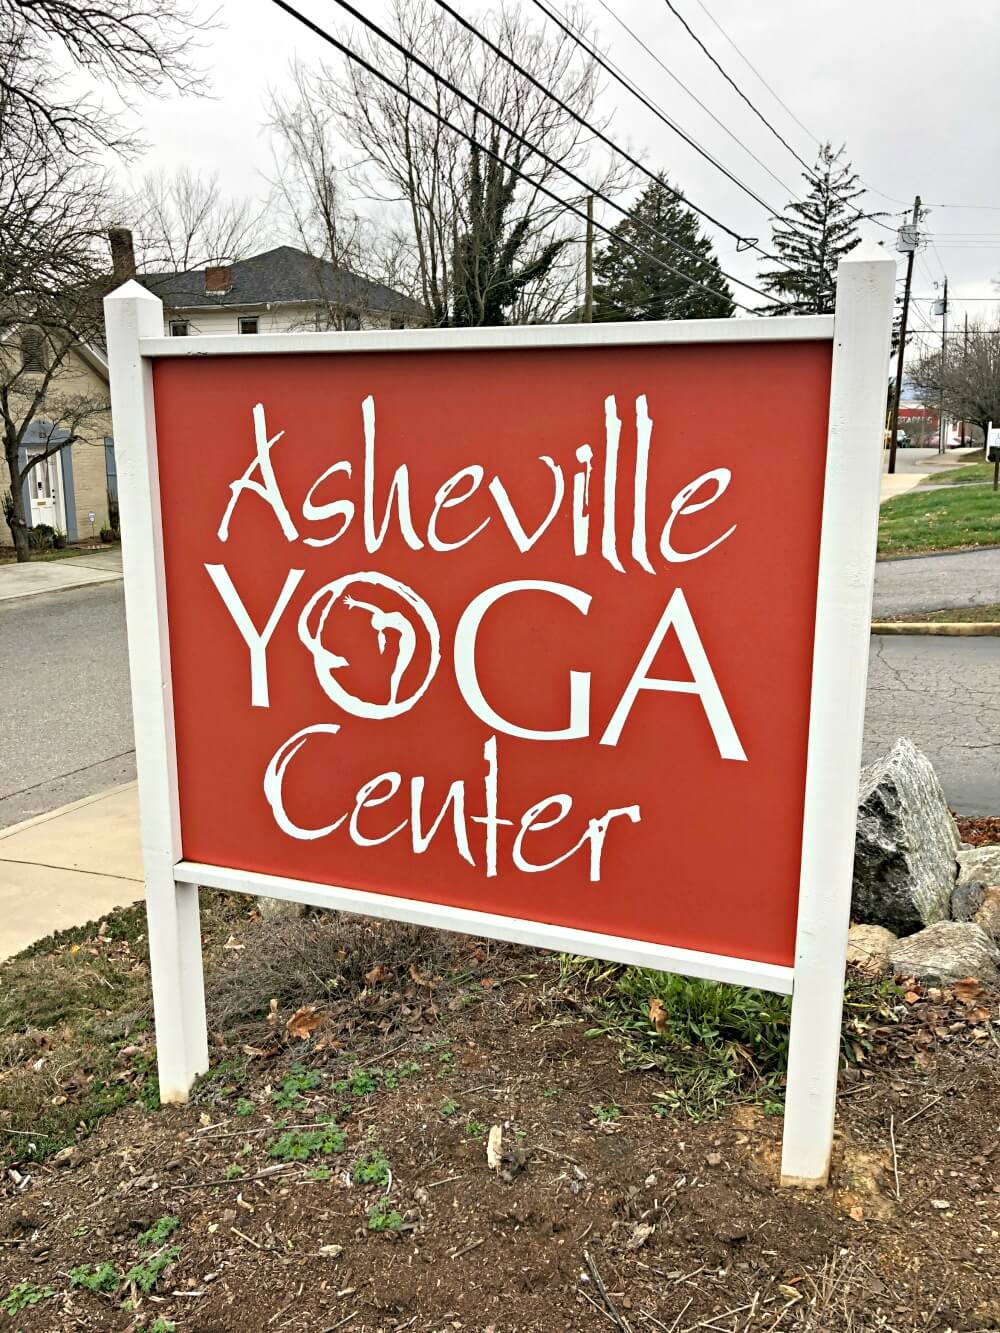 Asheville yoga center 300-hour yoga teacher training